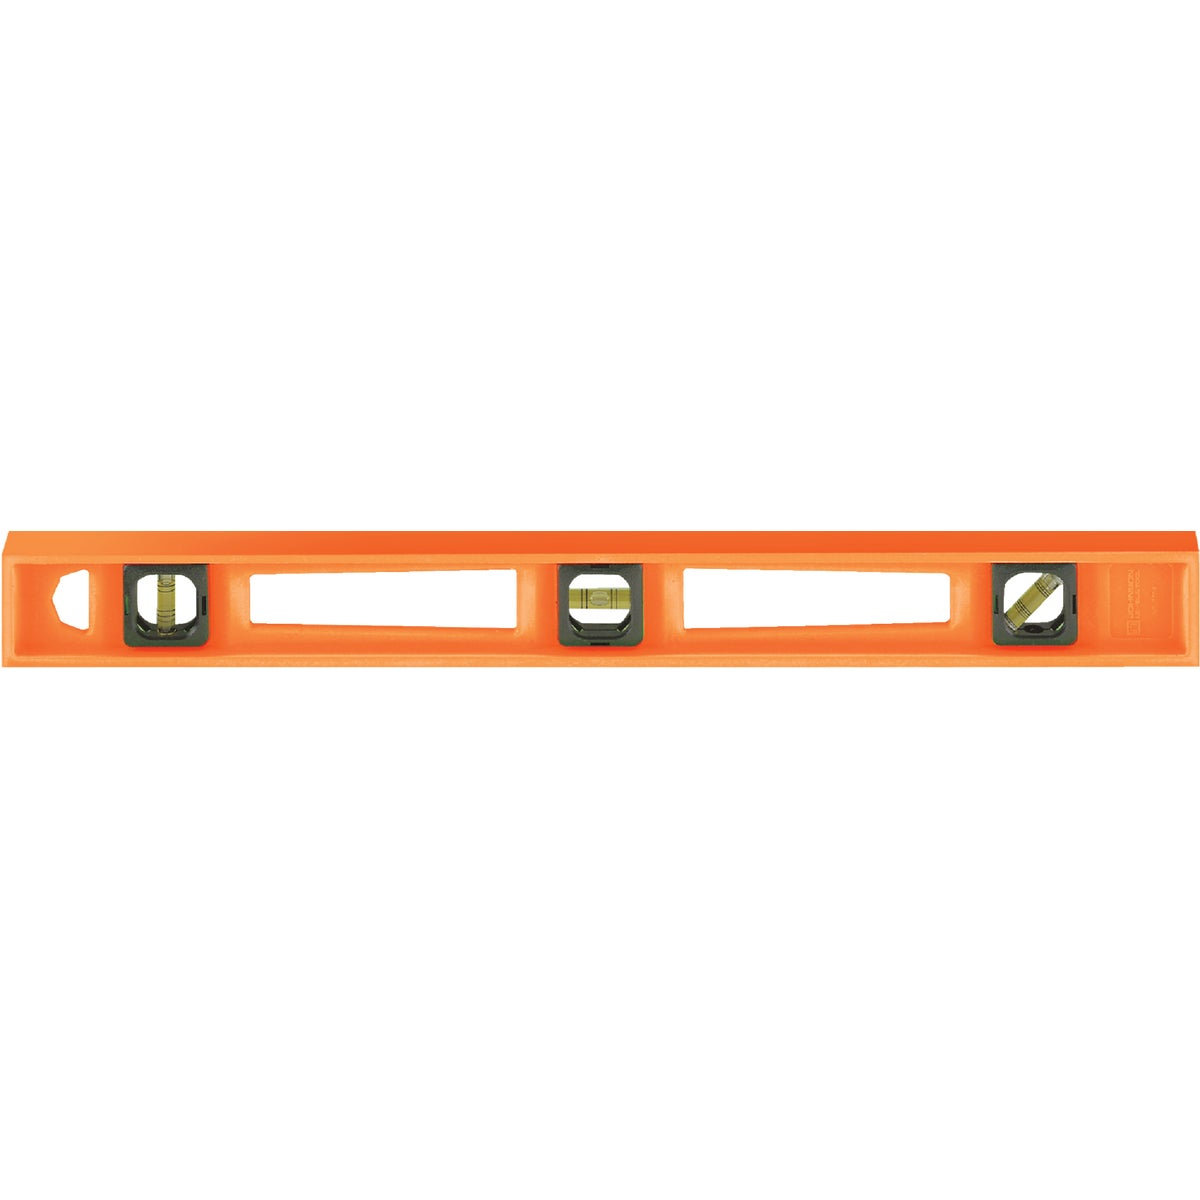 "48"" STRUCTO-CAST LEVEL - 7748-O by Johnson Level & Tool"